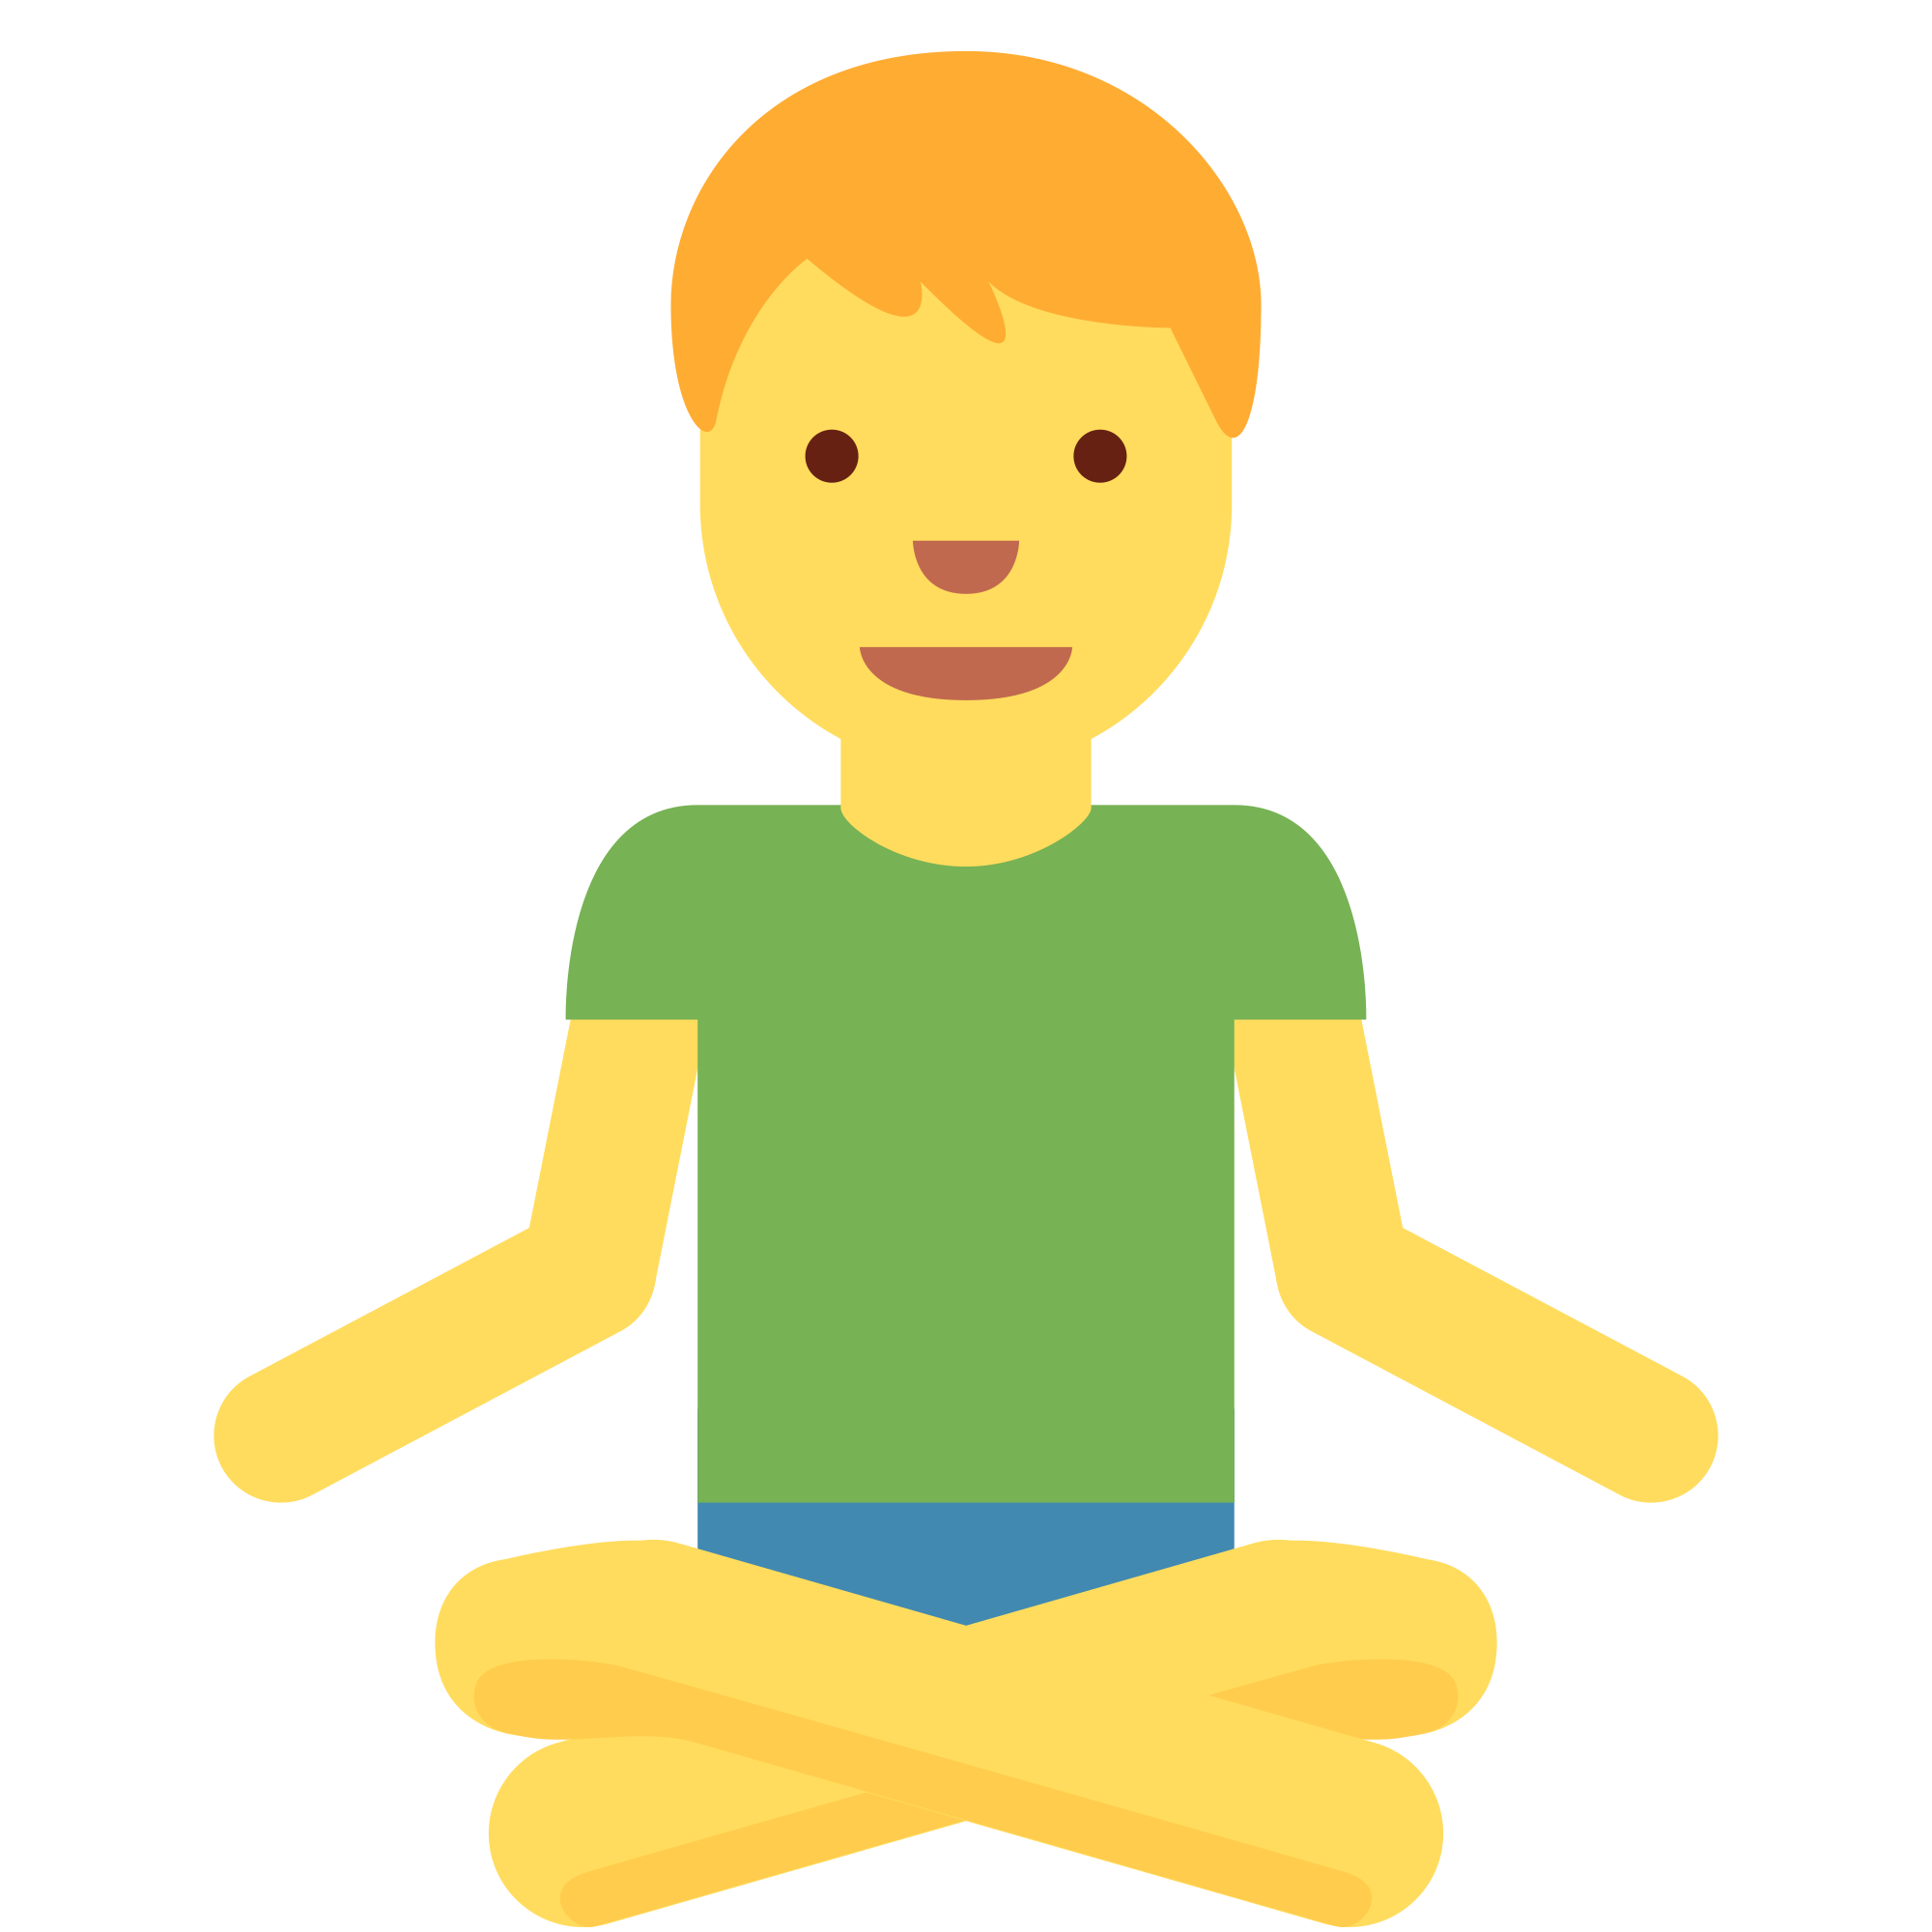 Meditation clipart peace mind. Png freeuse stock